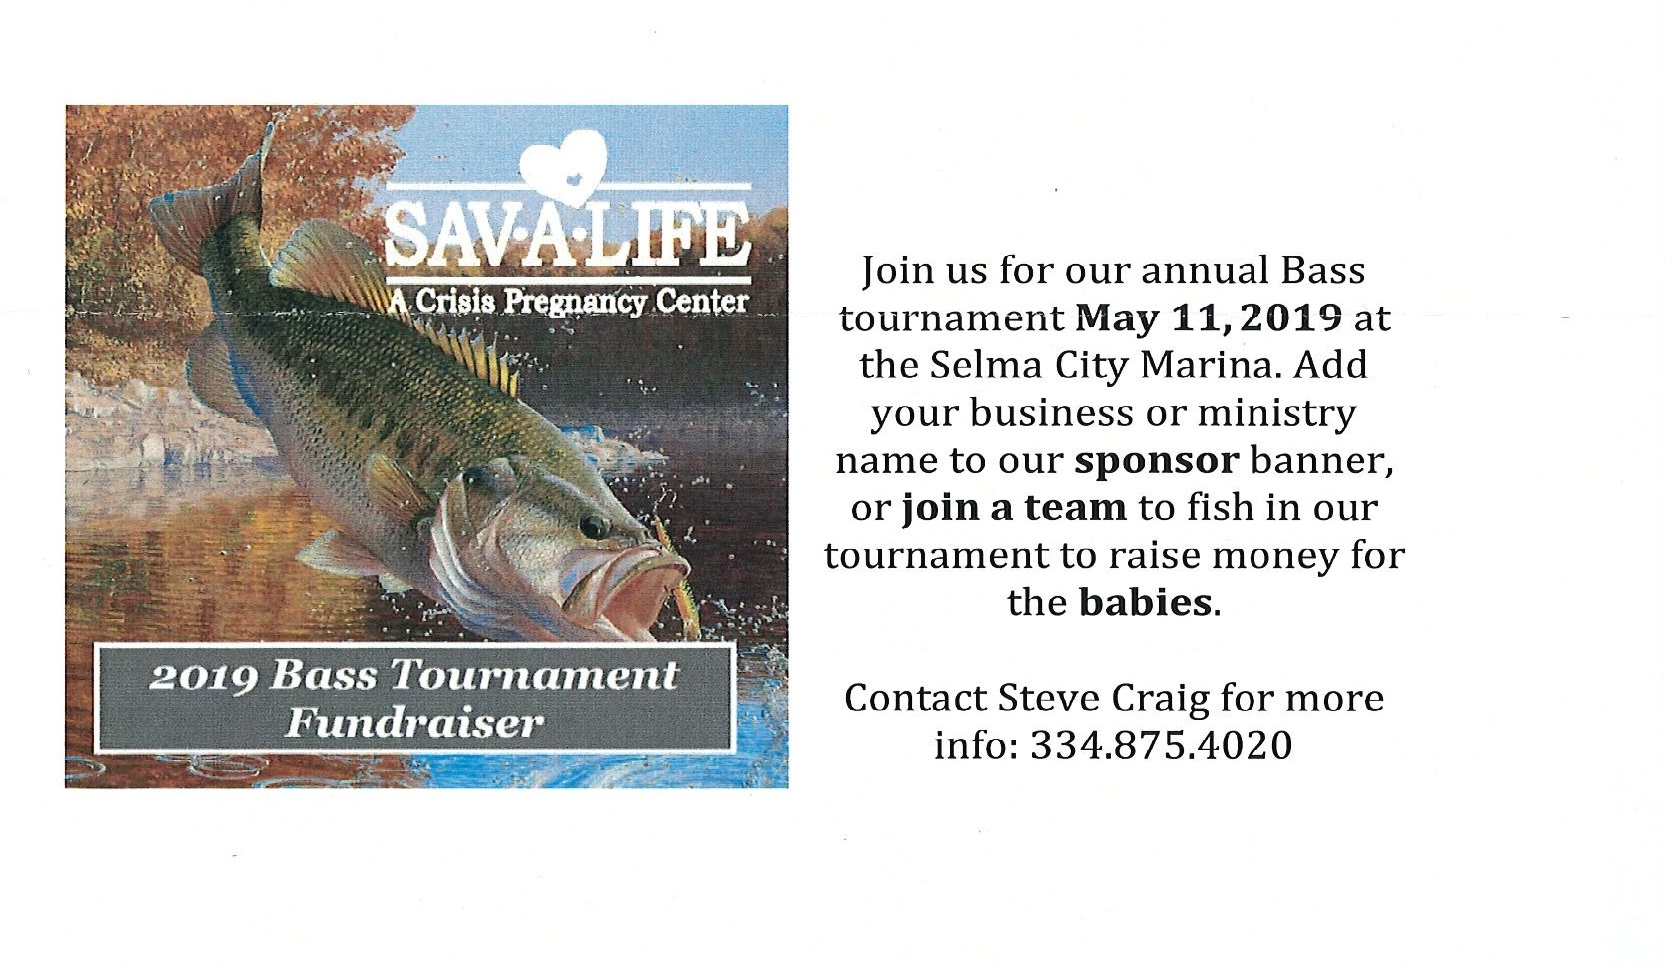 Sav A Life Bass Tournament Fundraiser.jpg